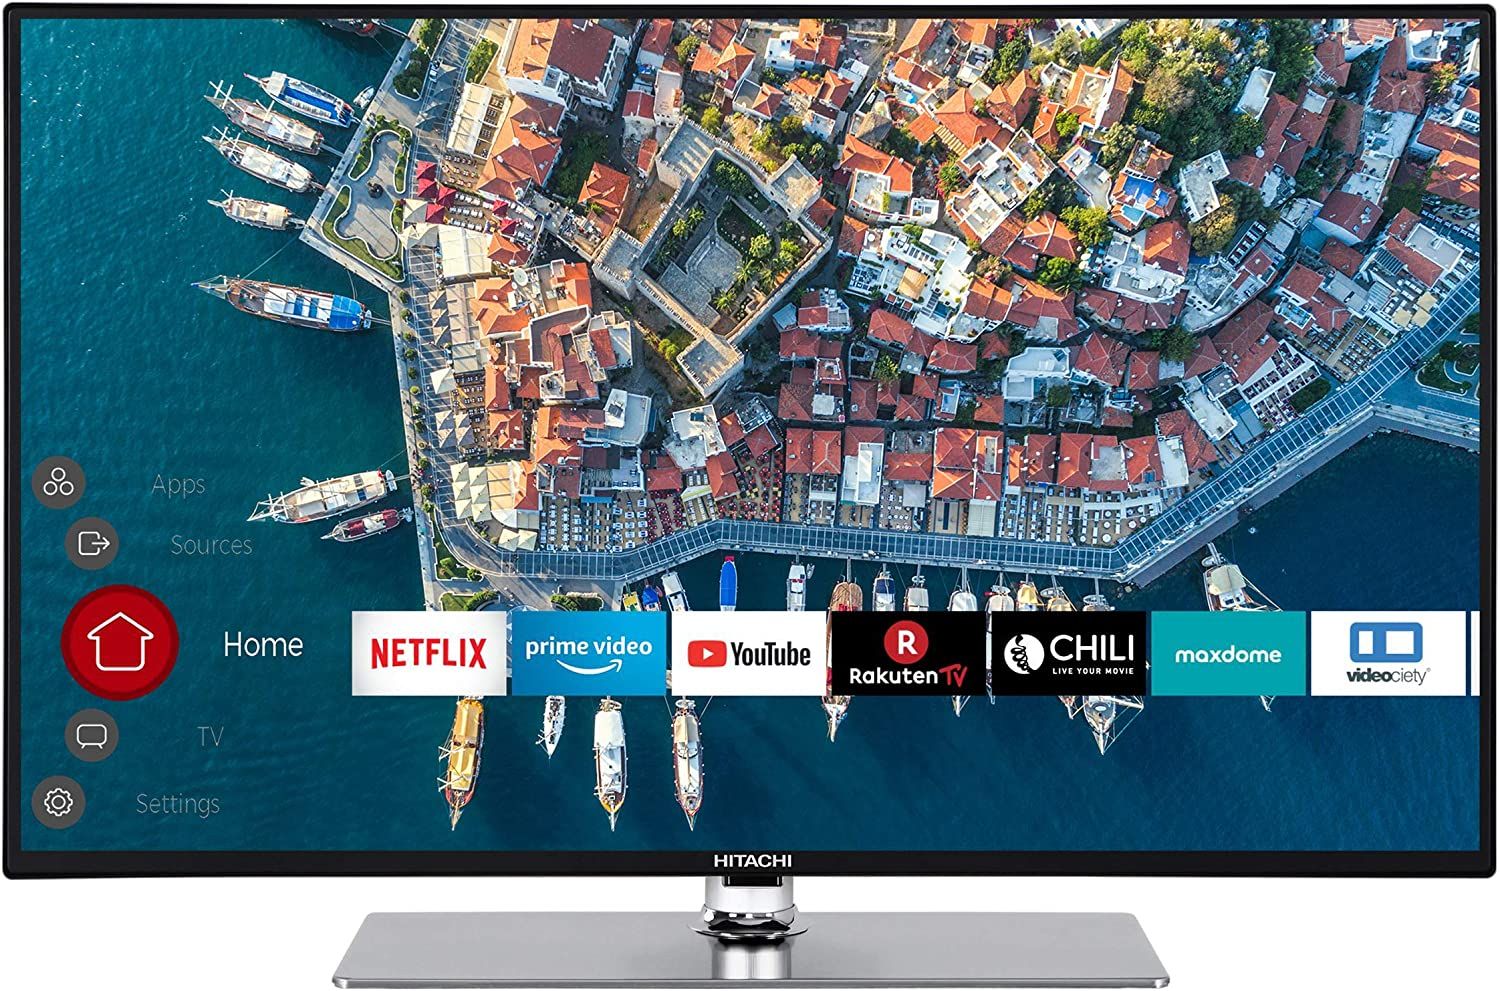 Hitachi Televisor inteligente F32L4001 (Full HD con Prime Video, listo para Alexa, Bluetooth, sintonizador triple, PVR) 32